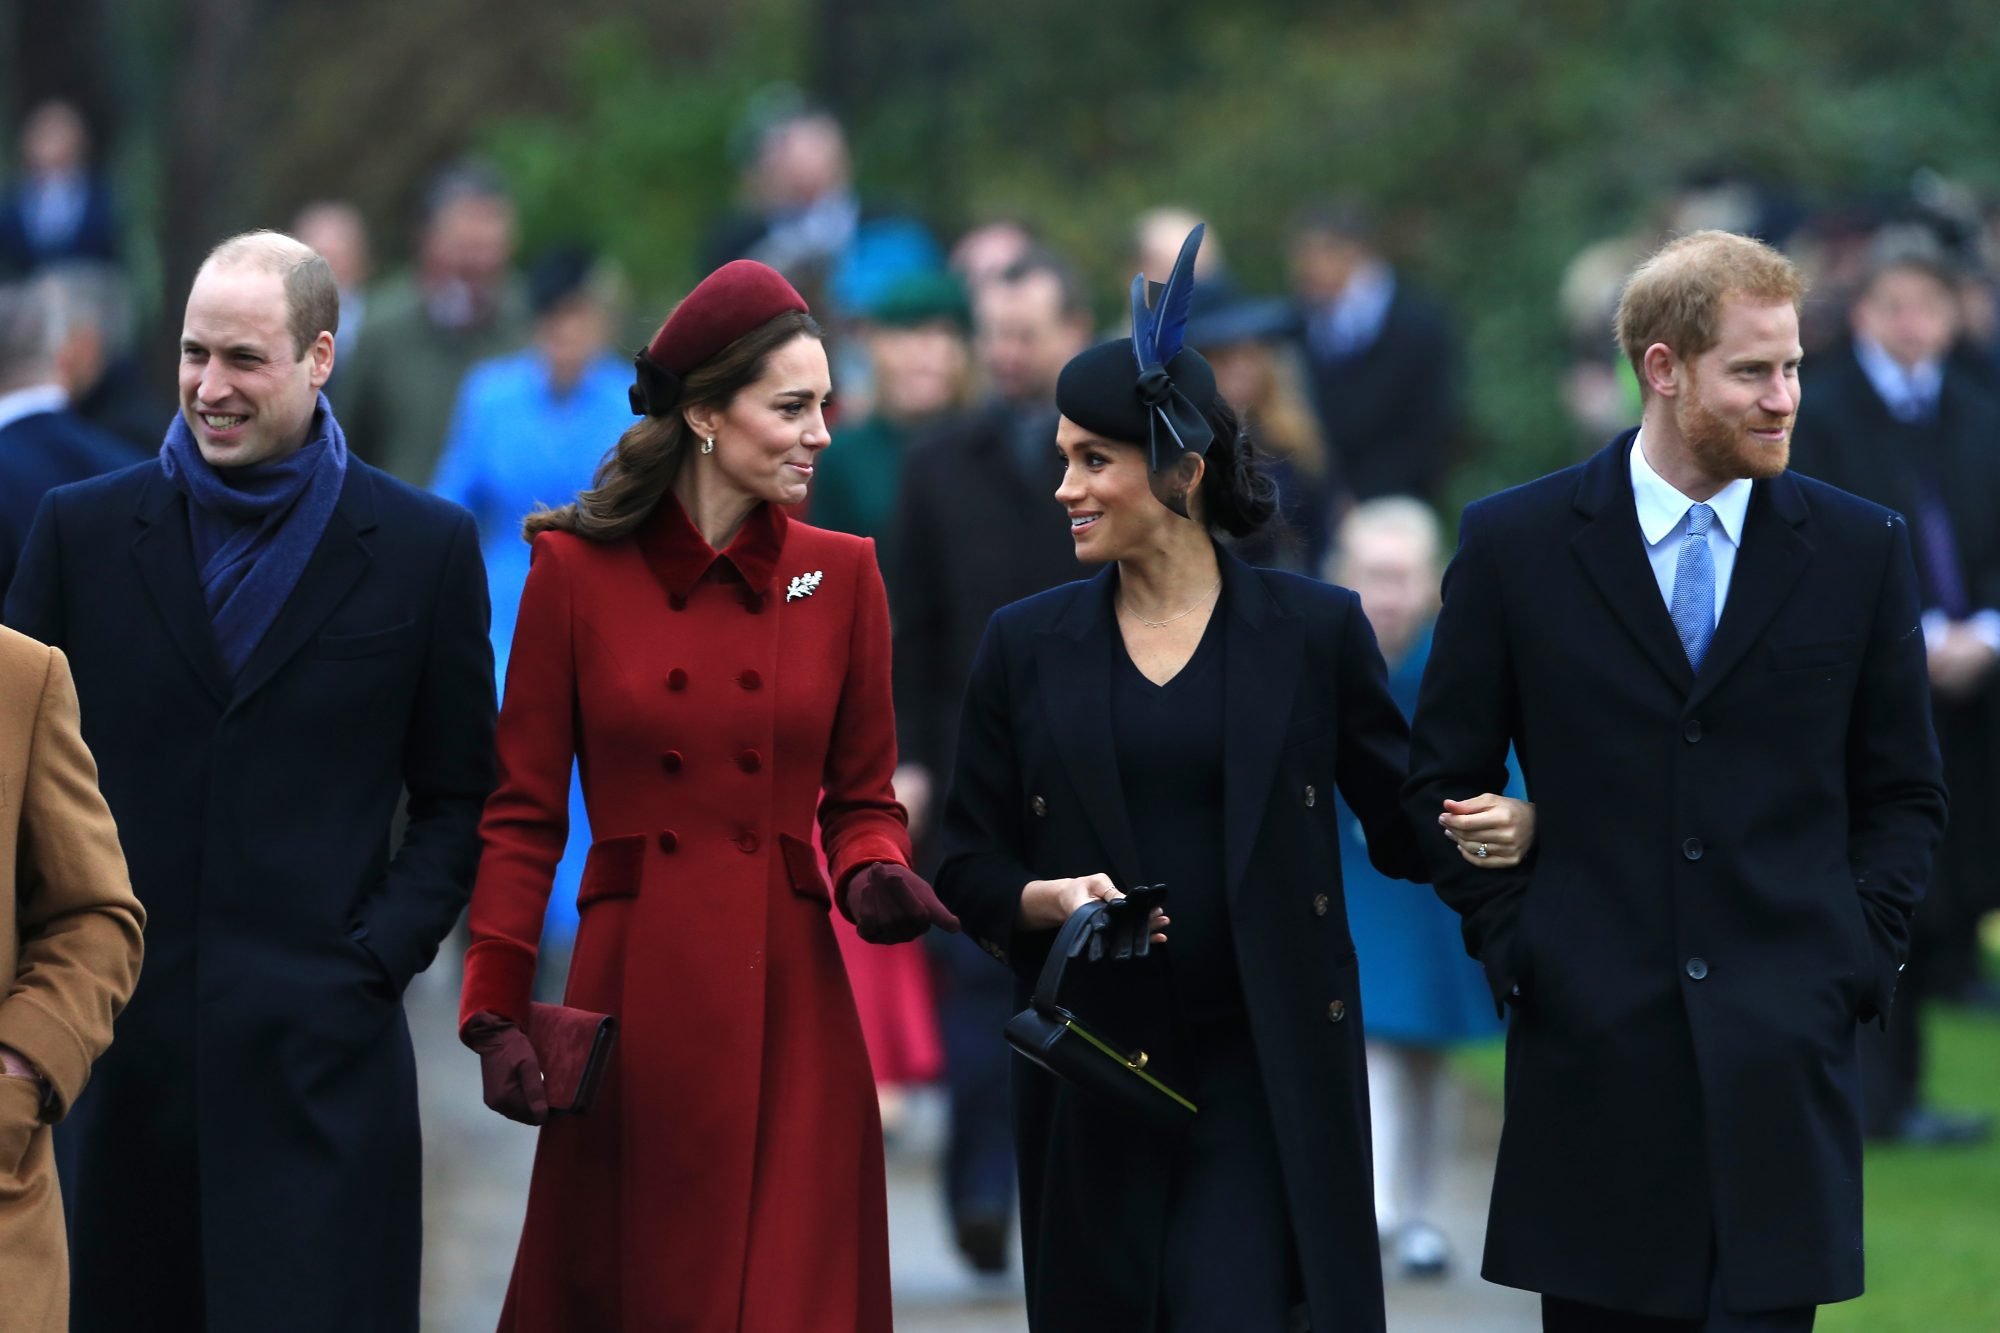 Prince William, Kate Middleton, Prince Harry, and Meghan Markle walking next to each other